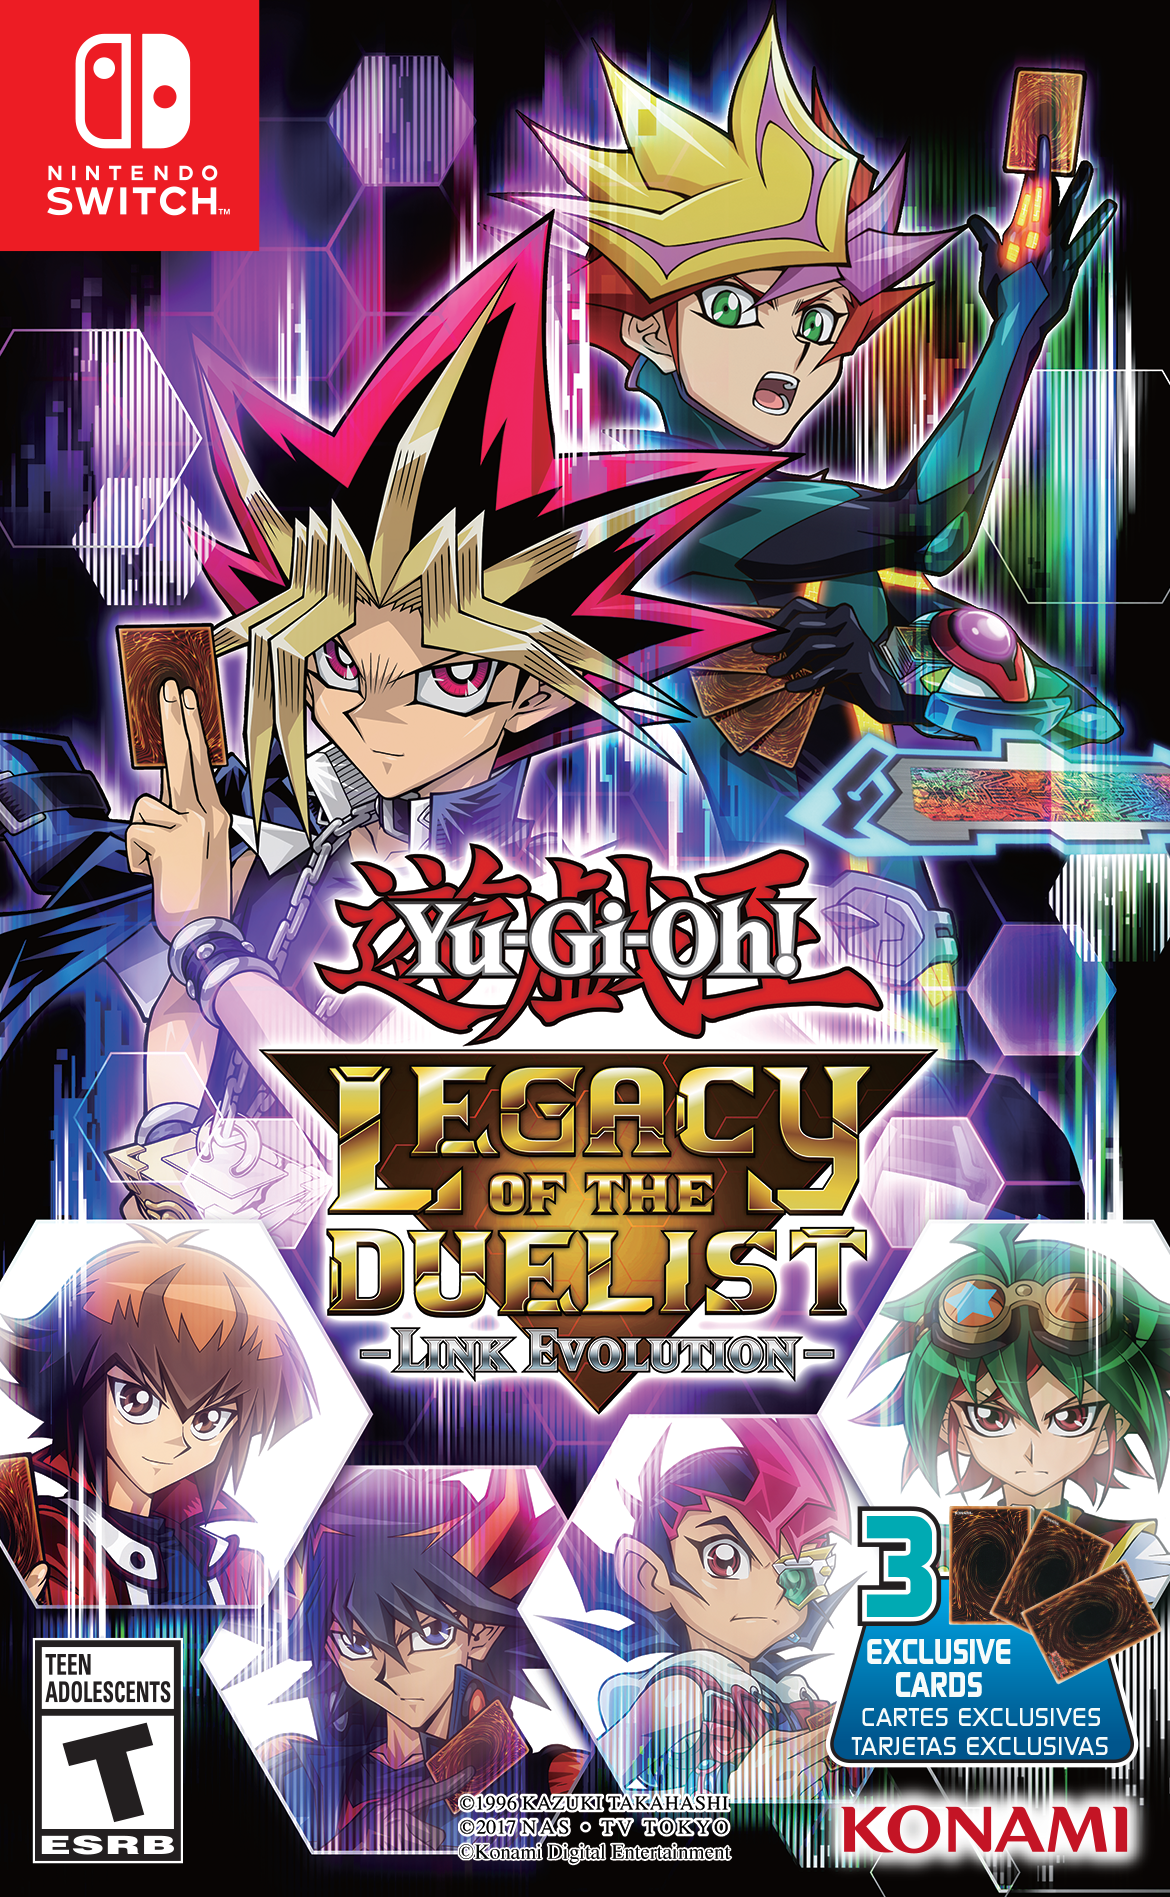 YGO_LOTDLE_SWITCH_2D_1558443734.png